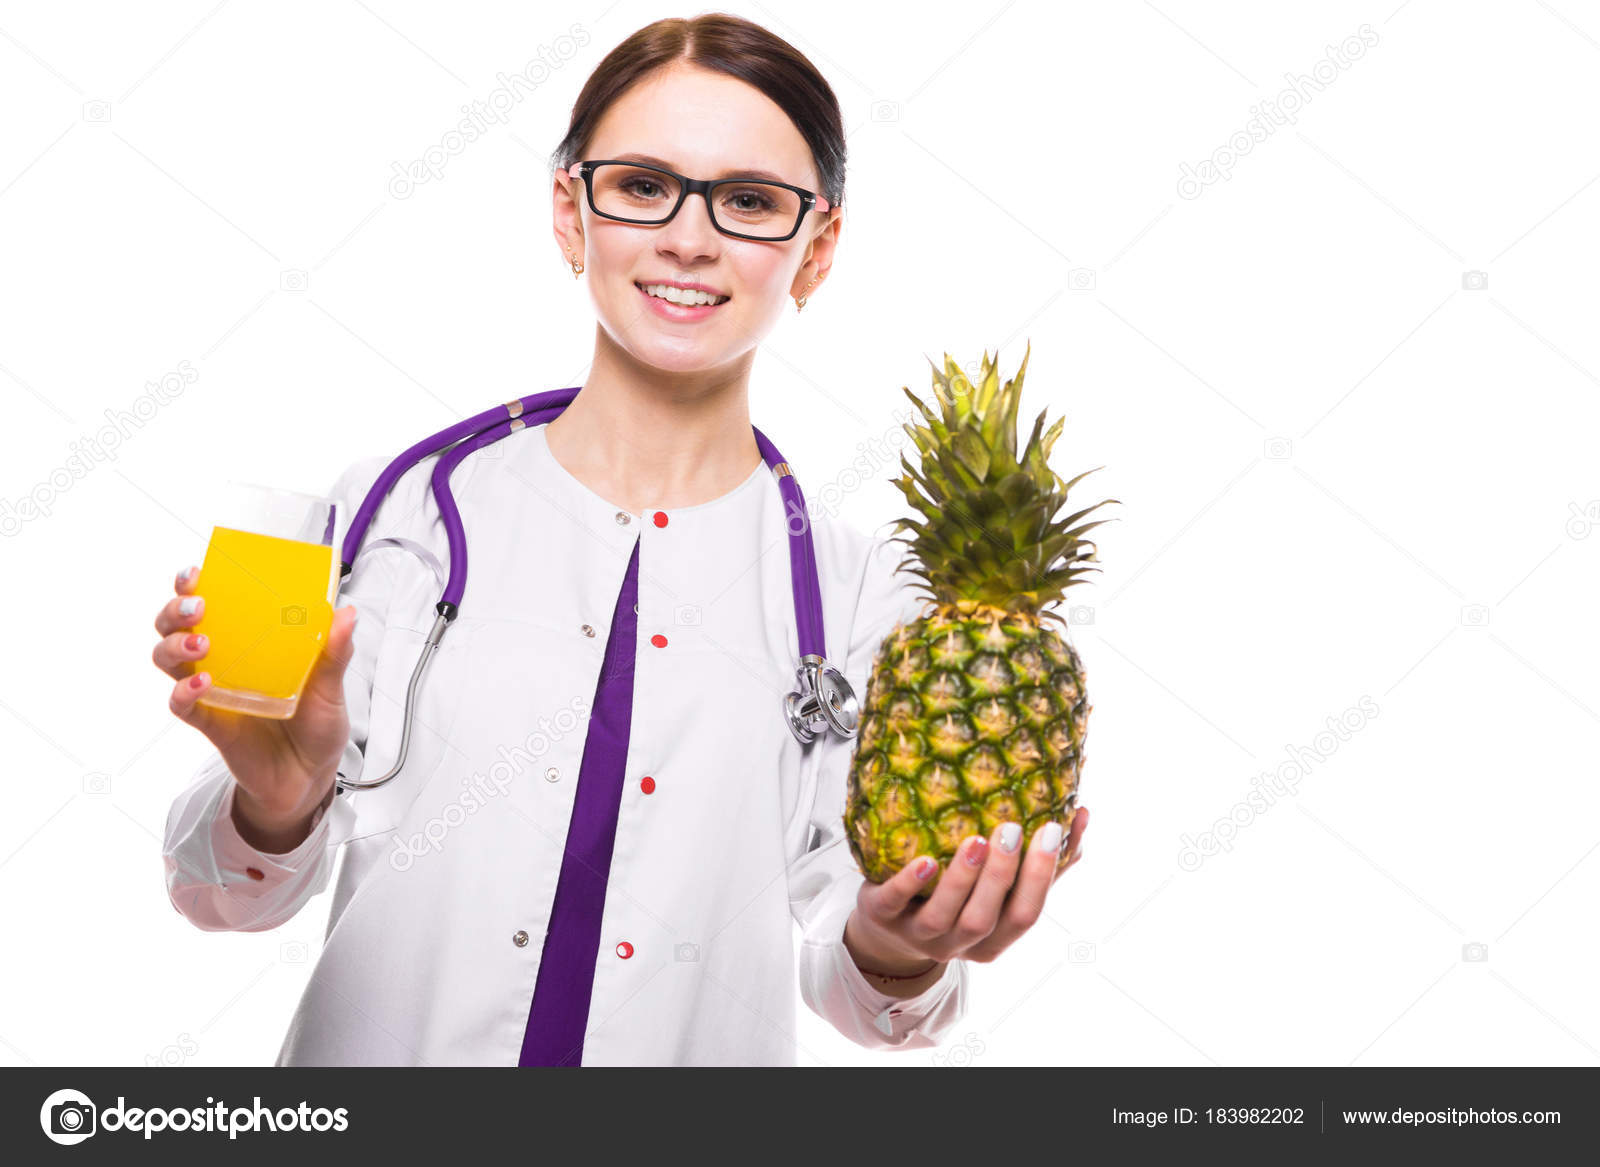 what does pineapple juice do for a woman